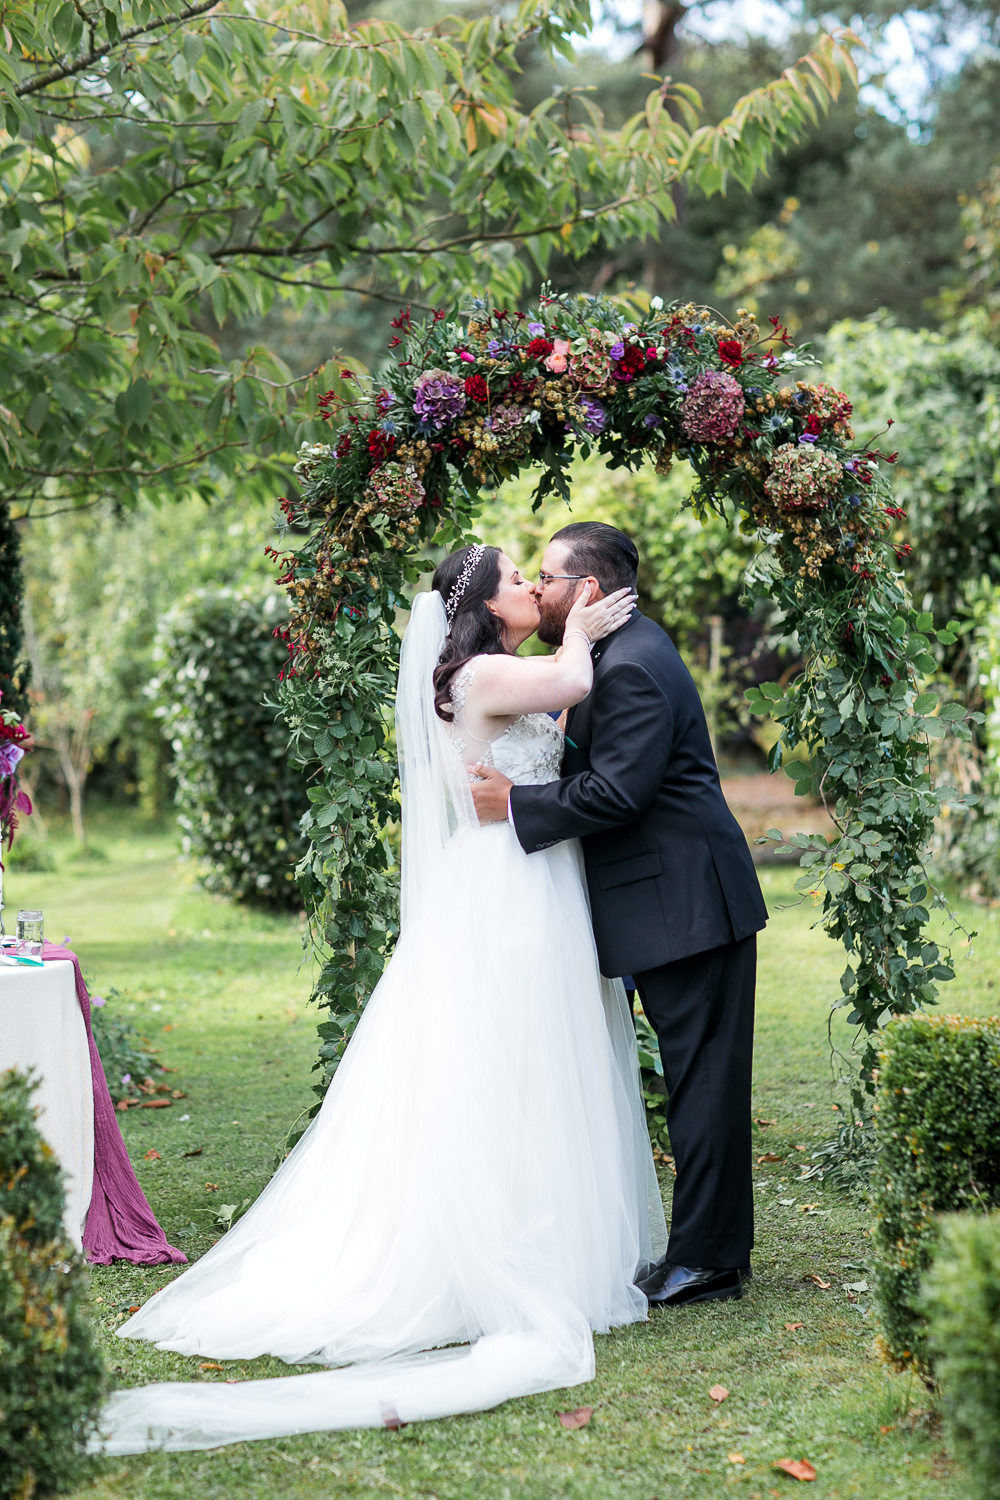 First kiss at the outside wedding ceremony